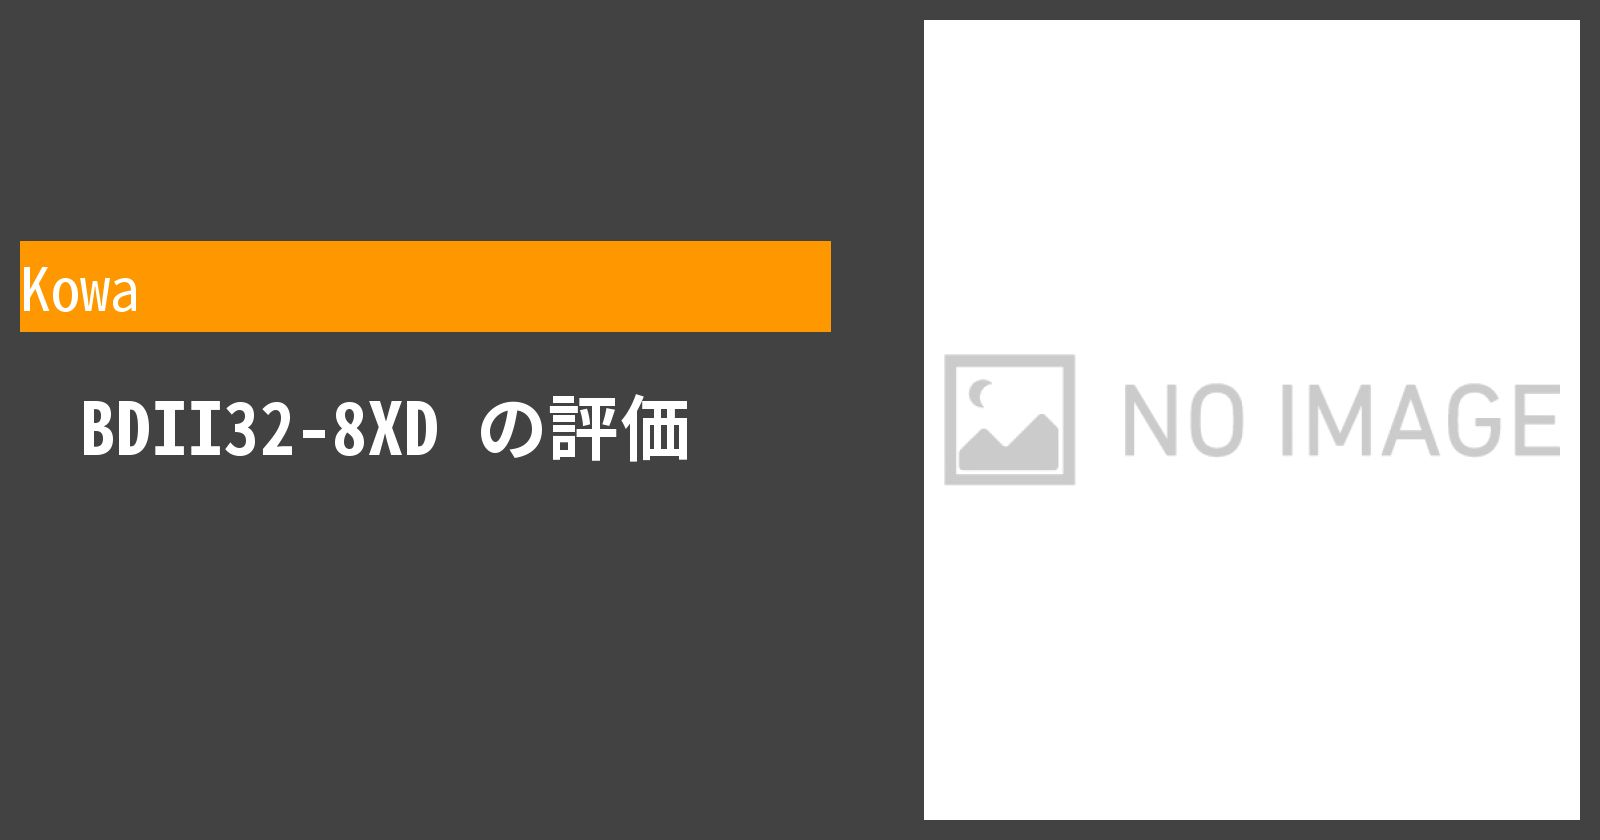 BDII32-8XDを徹底評価